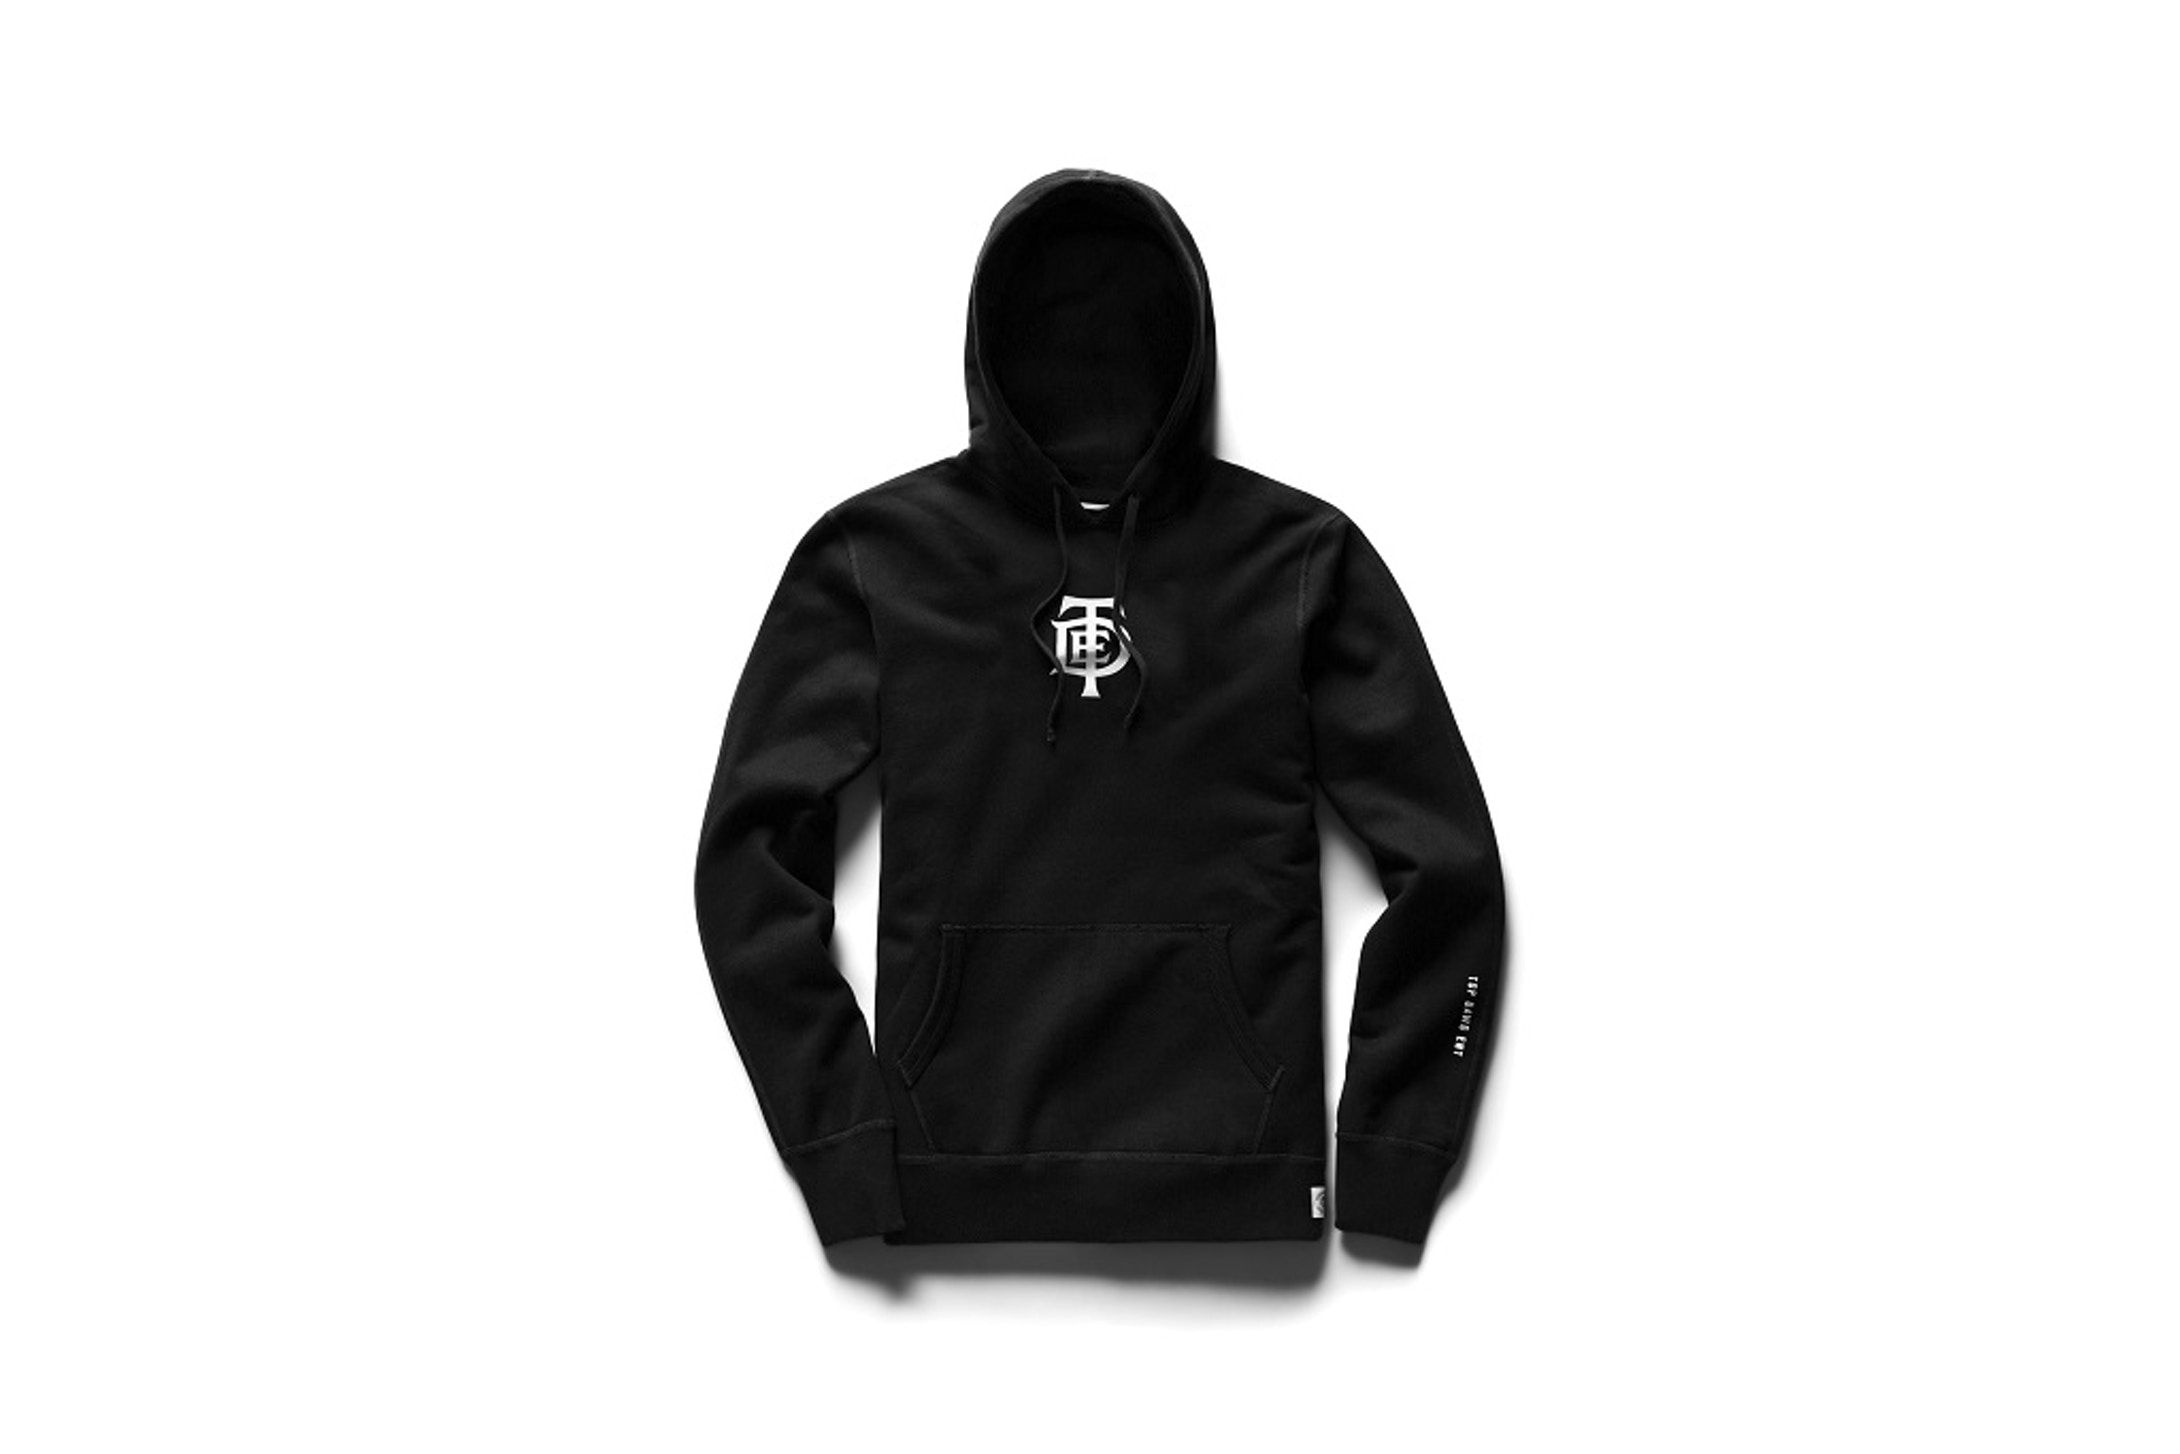 Top Dawg Entertainment & Reigning Champ Link Up For Capsule Collection